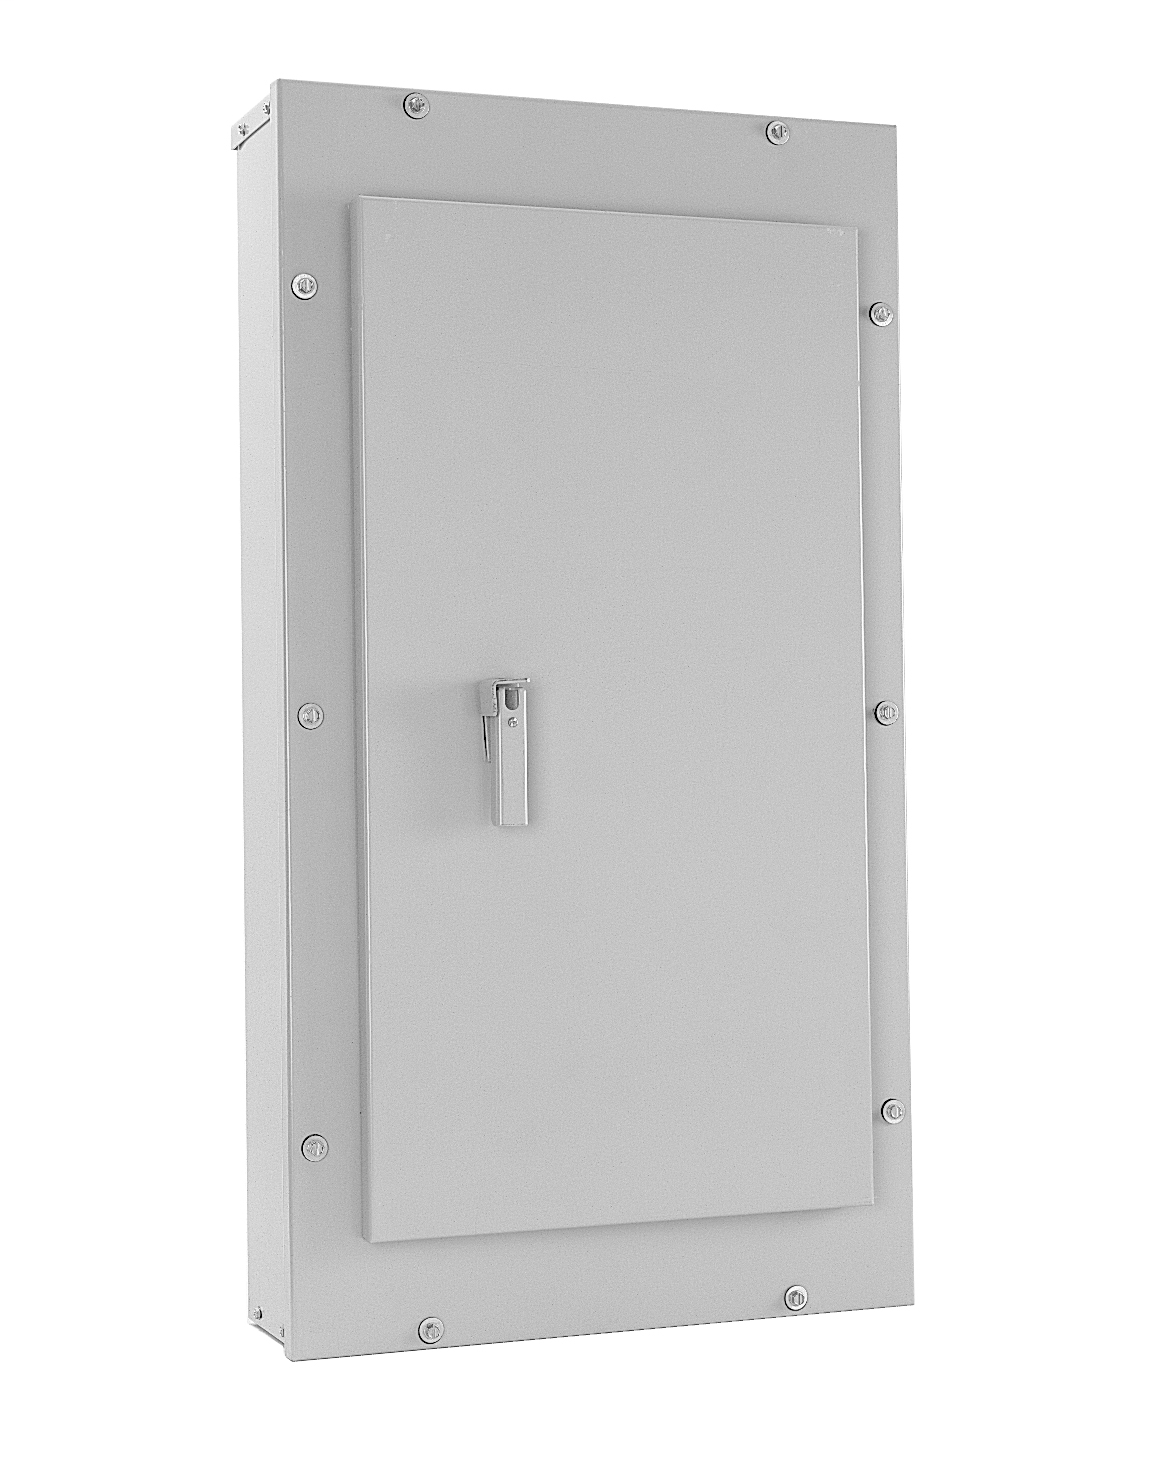 Boxes come with blank endwalls. If endwalls with knockouts are required, also order knockout endwall kit AKEW2.